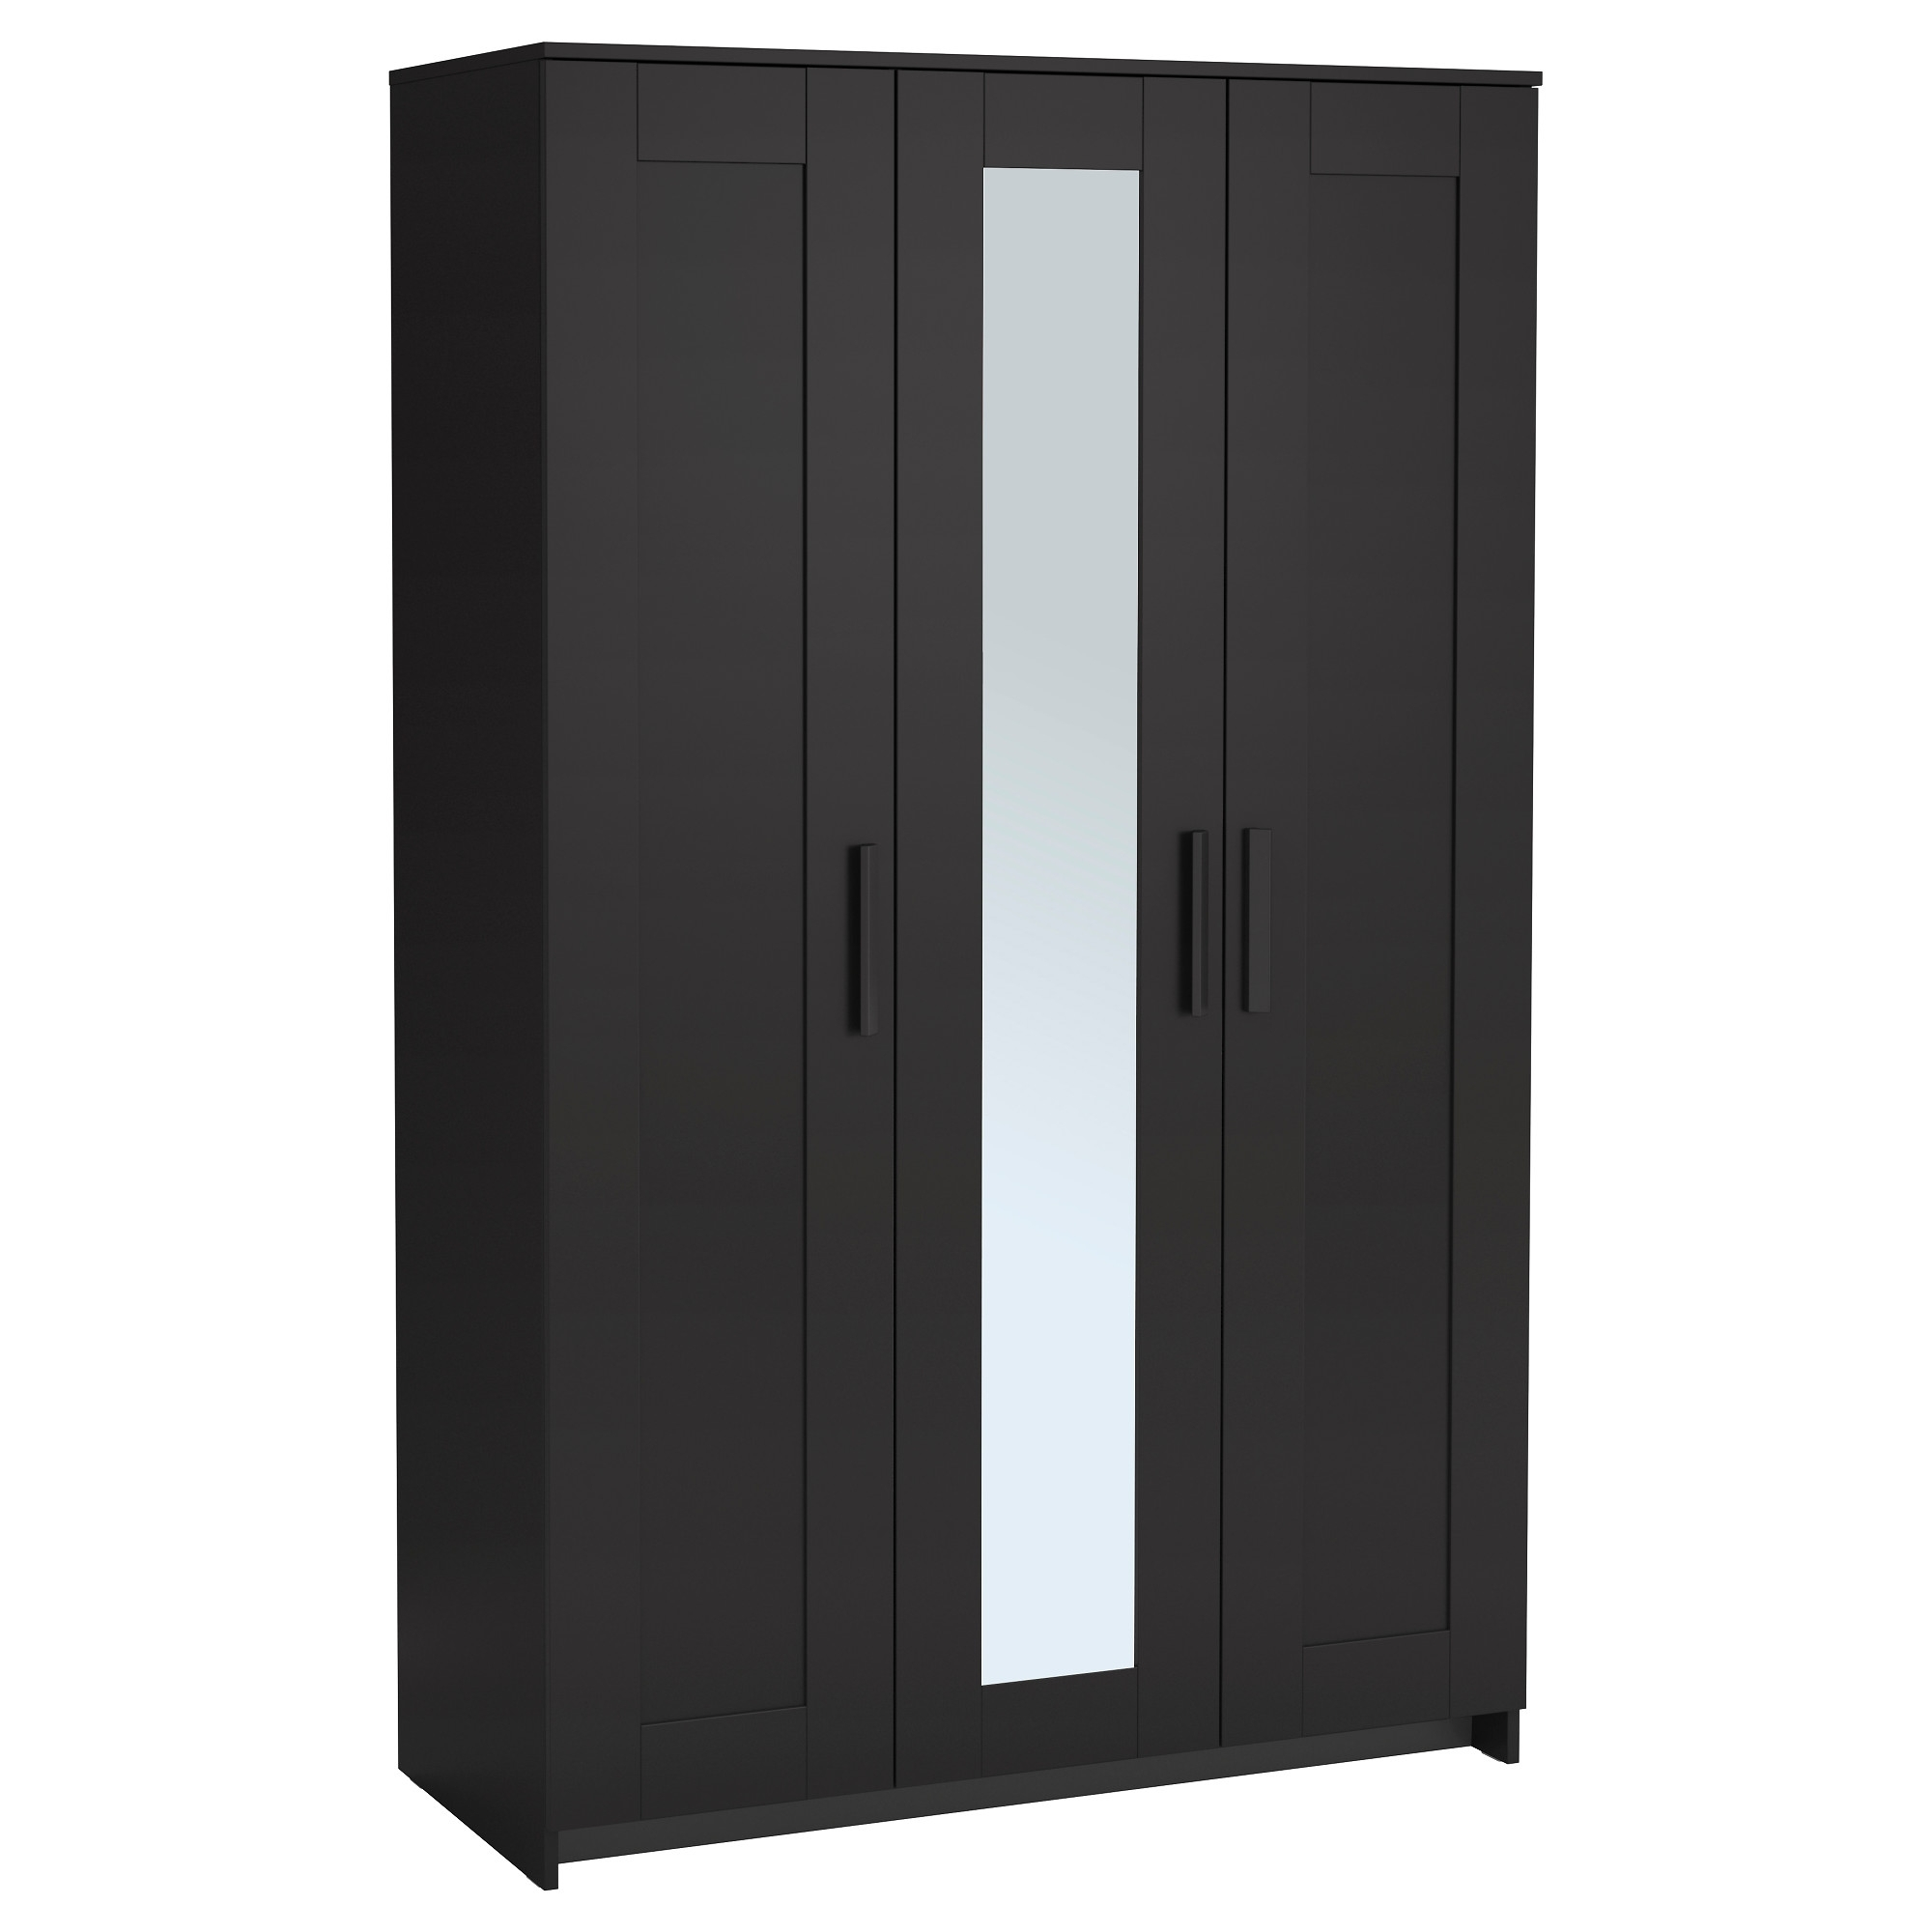 Trendy 3 Door Black Wardrobes Intended For Brimnes Wardrobe With 3 Doors – White – Ikea (View 9 of 15)